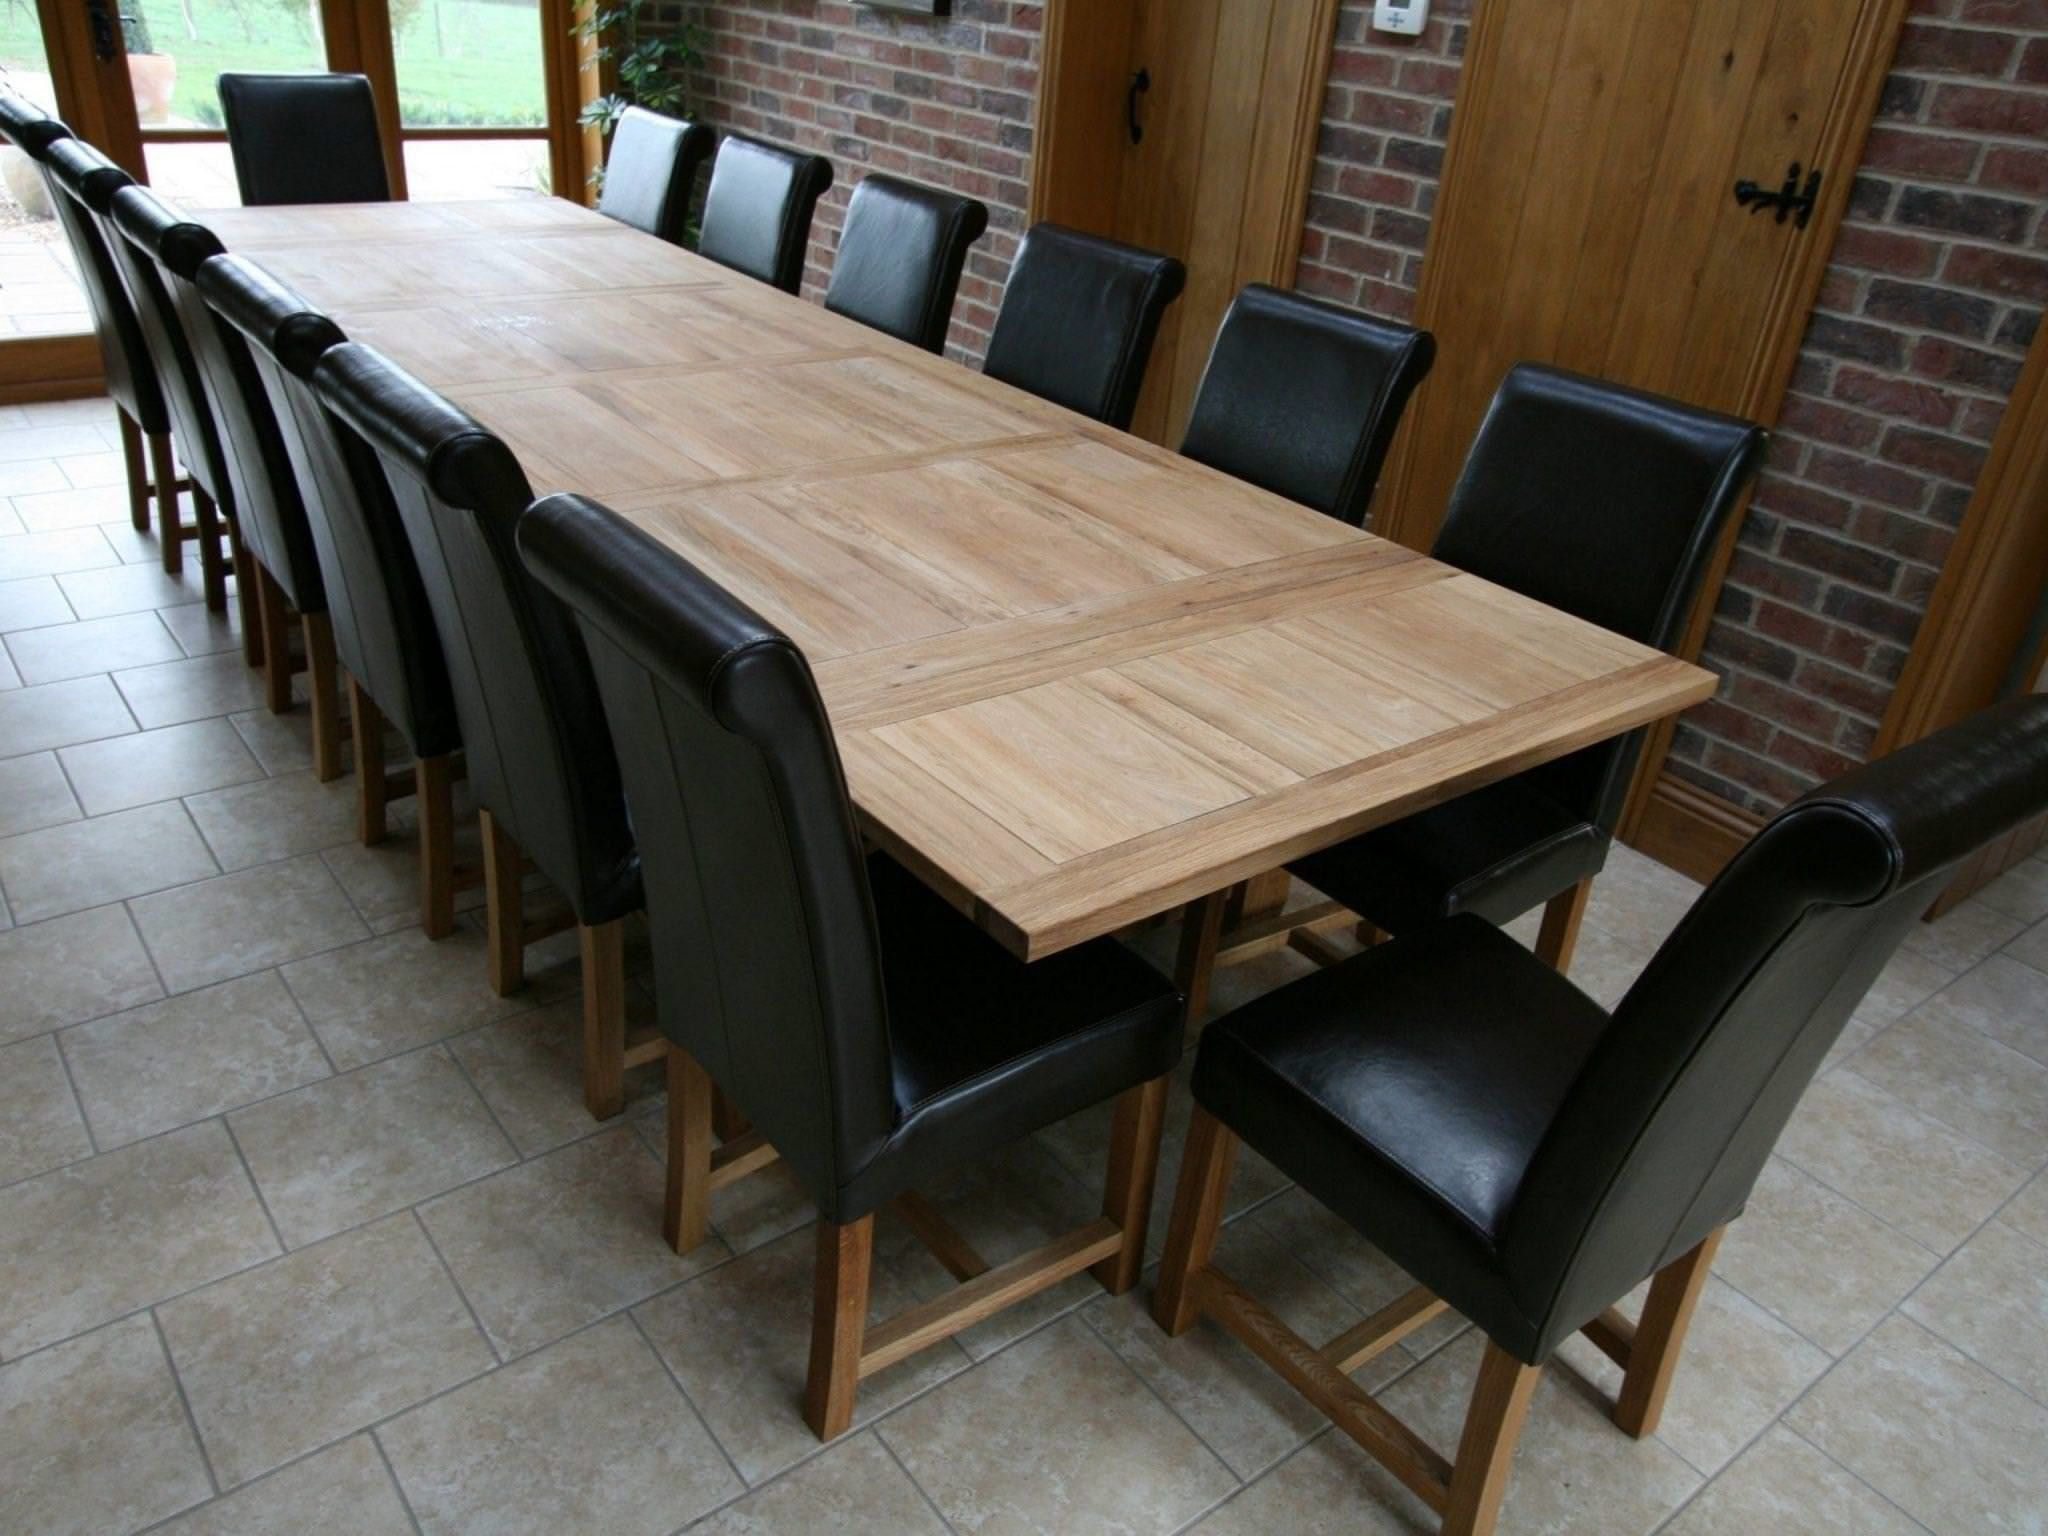 Door Decorative Dining Room Table For 12 9 Antique 12ft 6quot Edwardian 10 Chairs Good Looki Large Dining Room Table Large Round Dining Table Large Dining Room